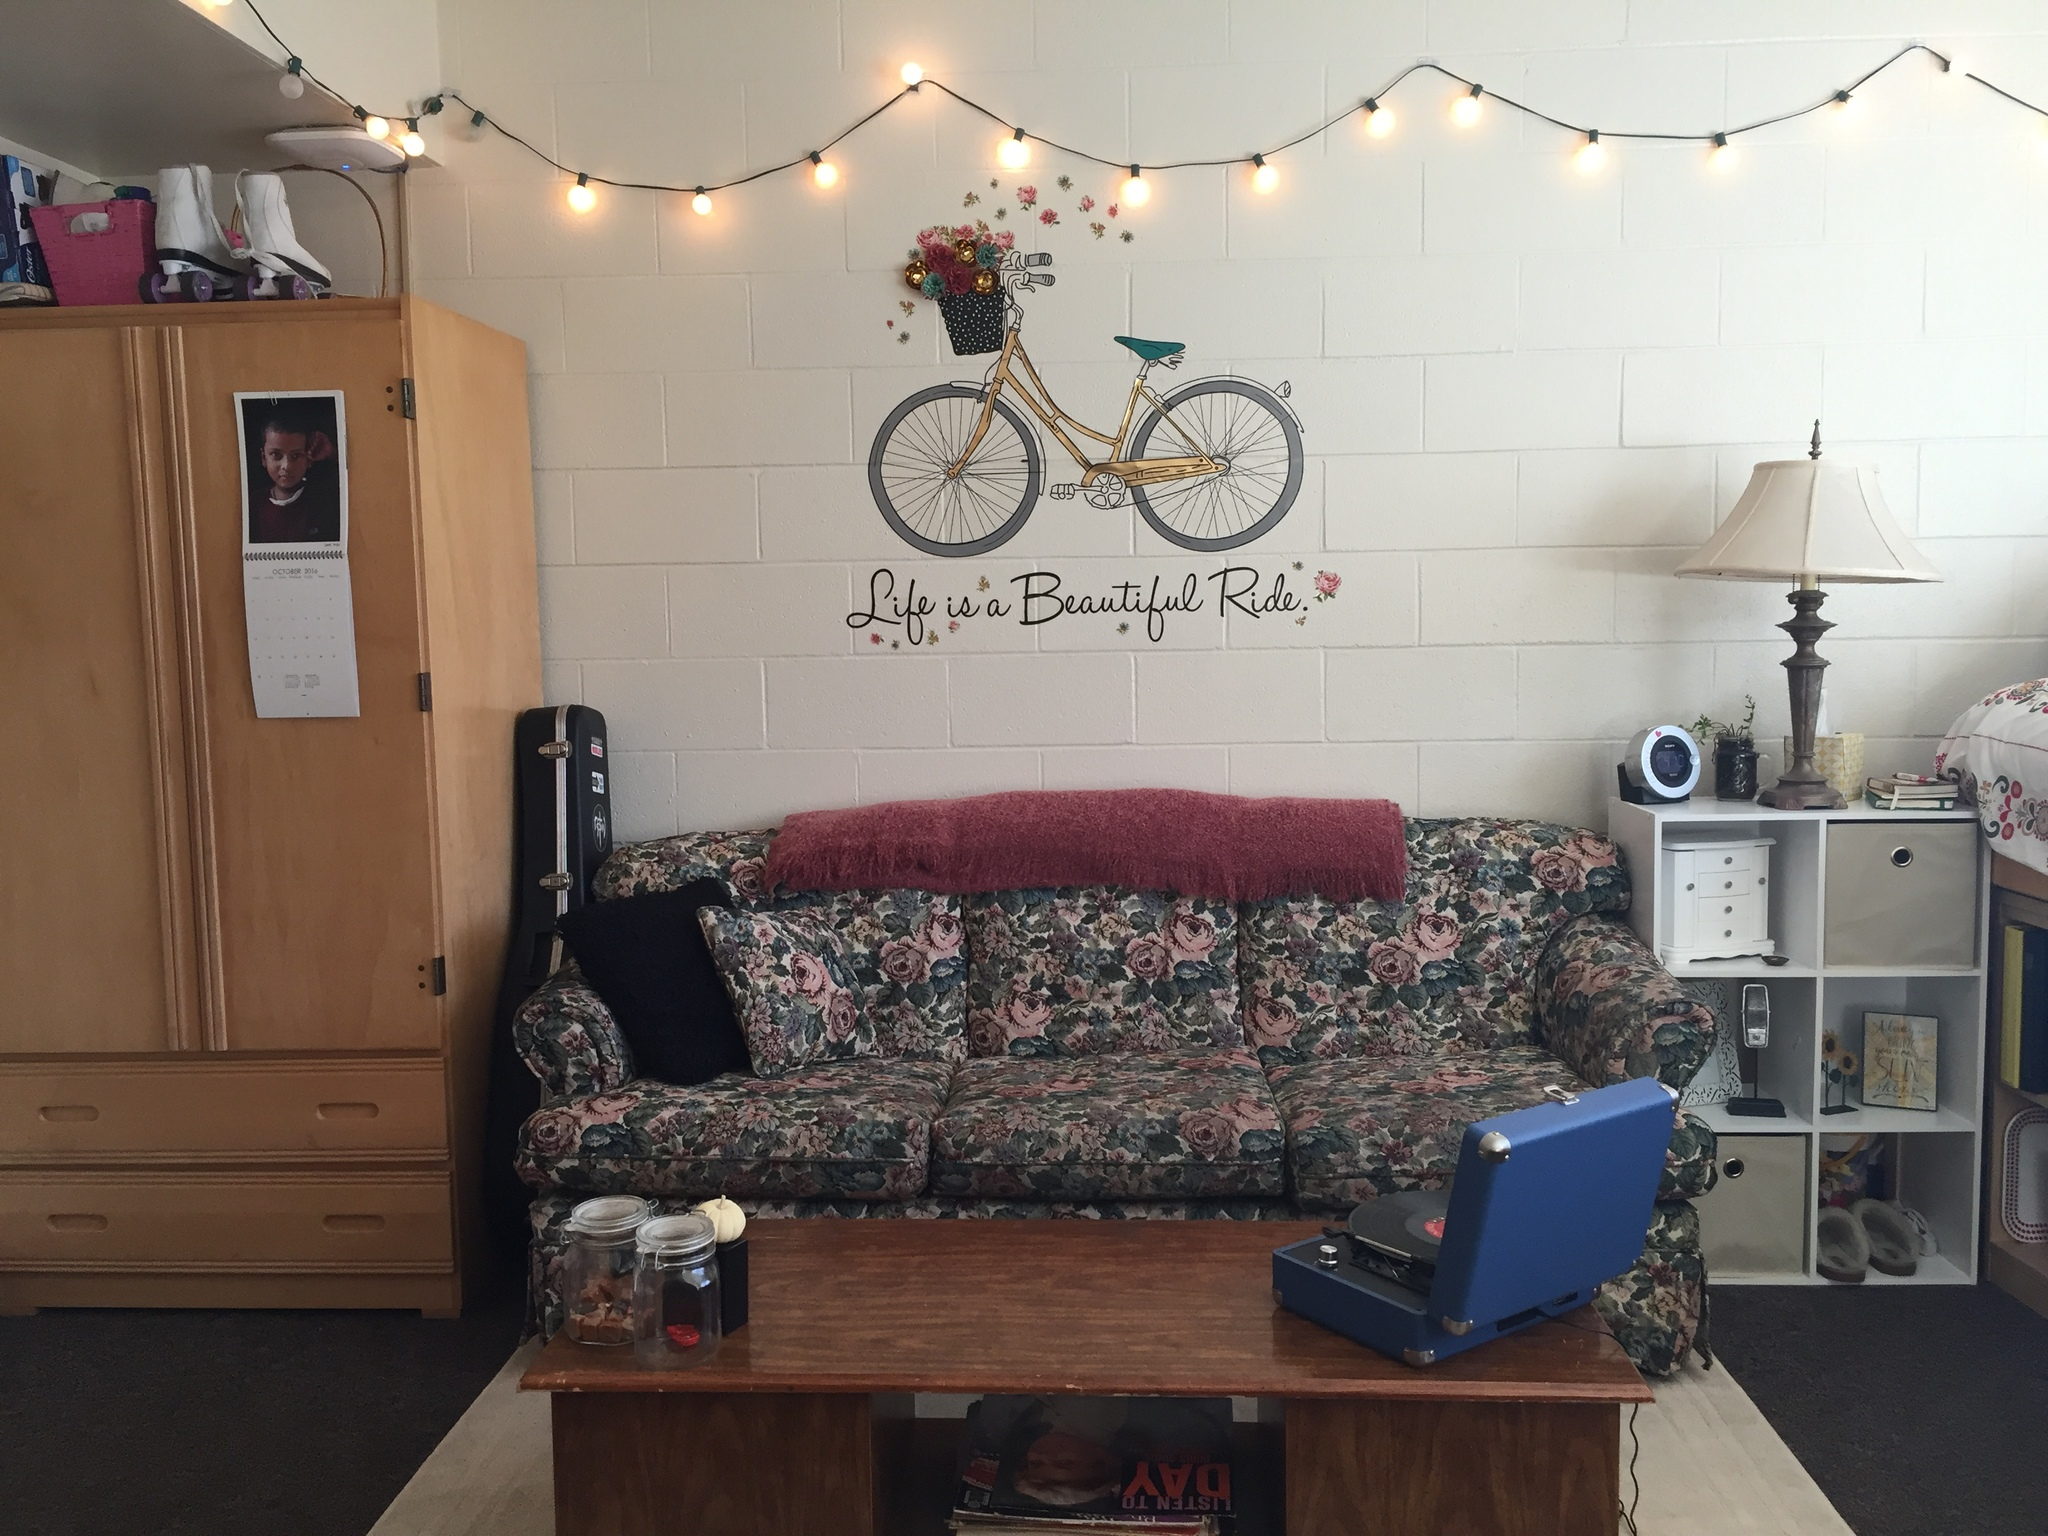 Life is a beautiful ride bicycle wall art over a vintage couch and record player